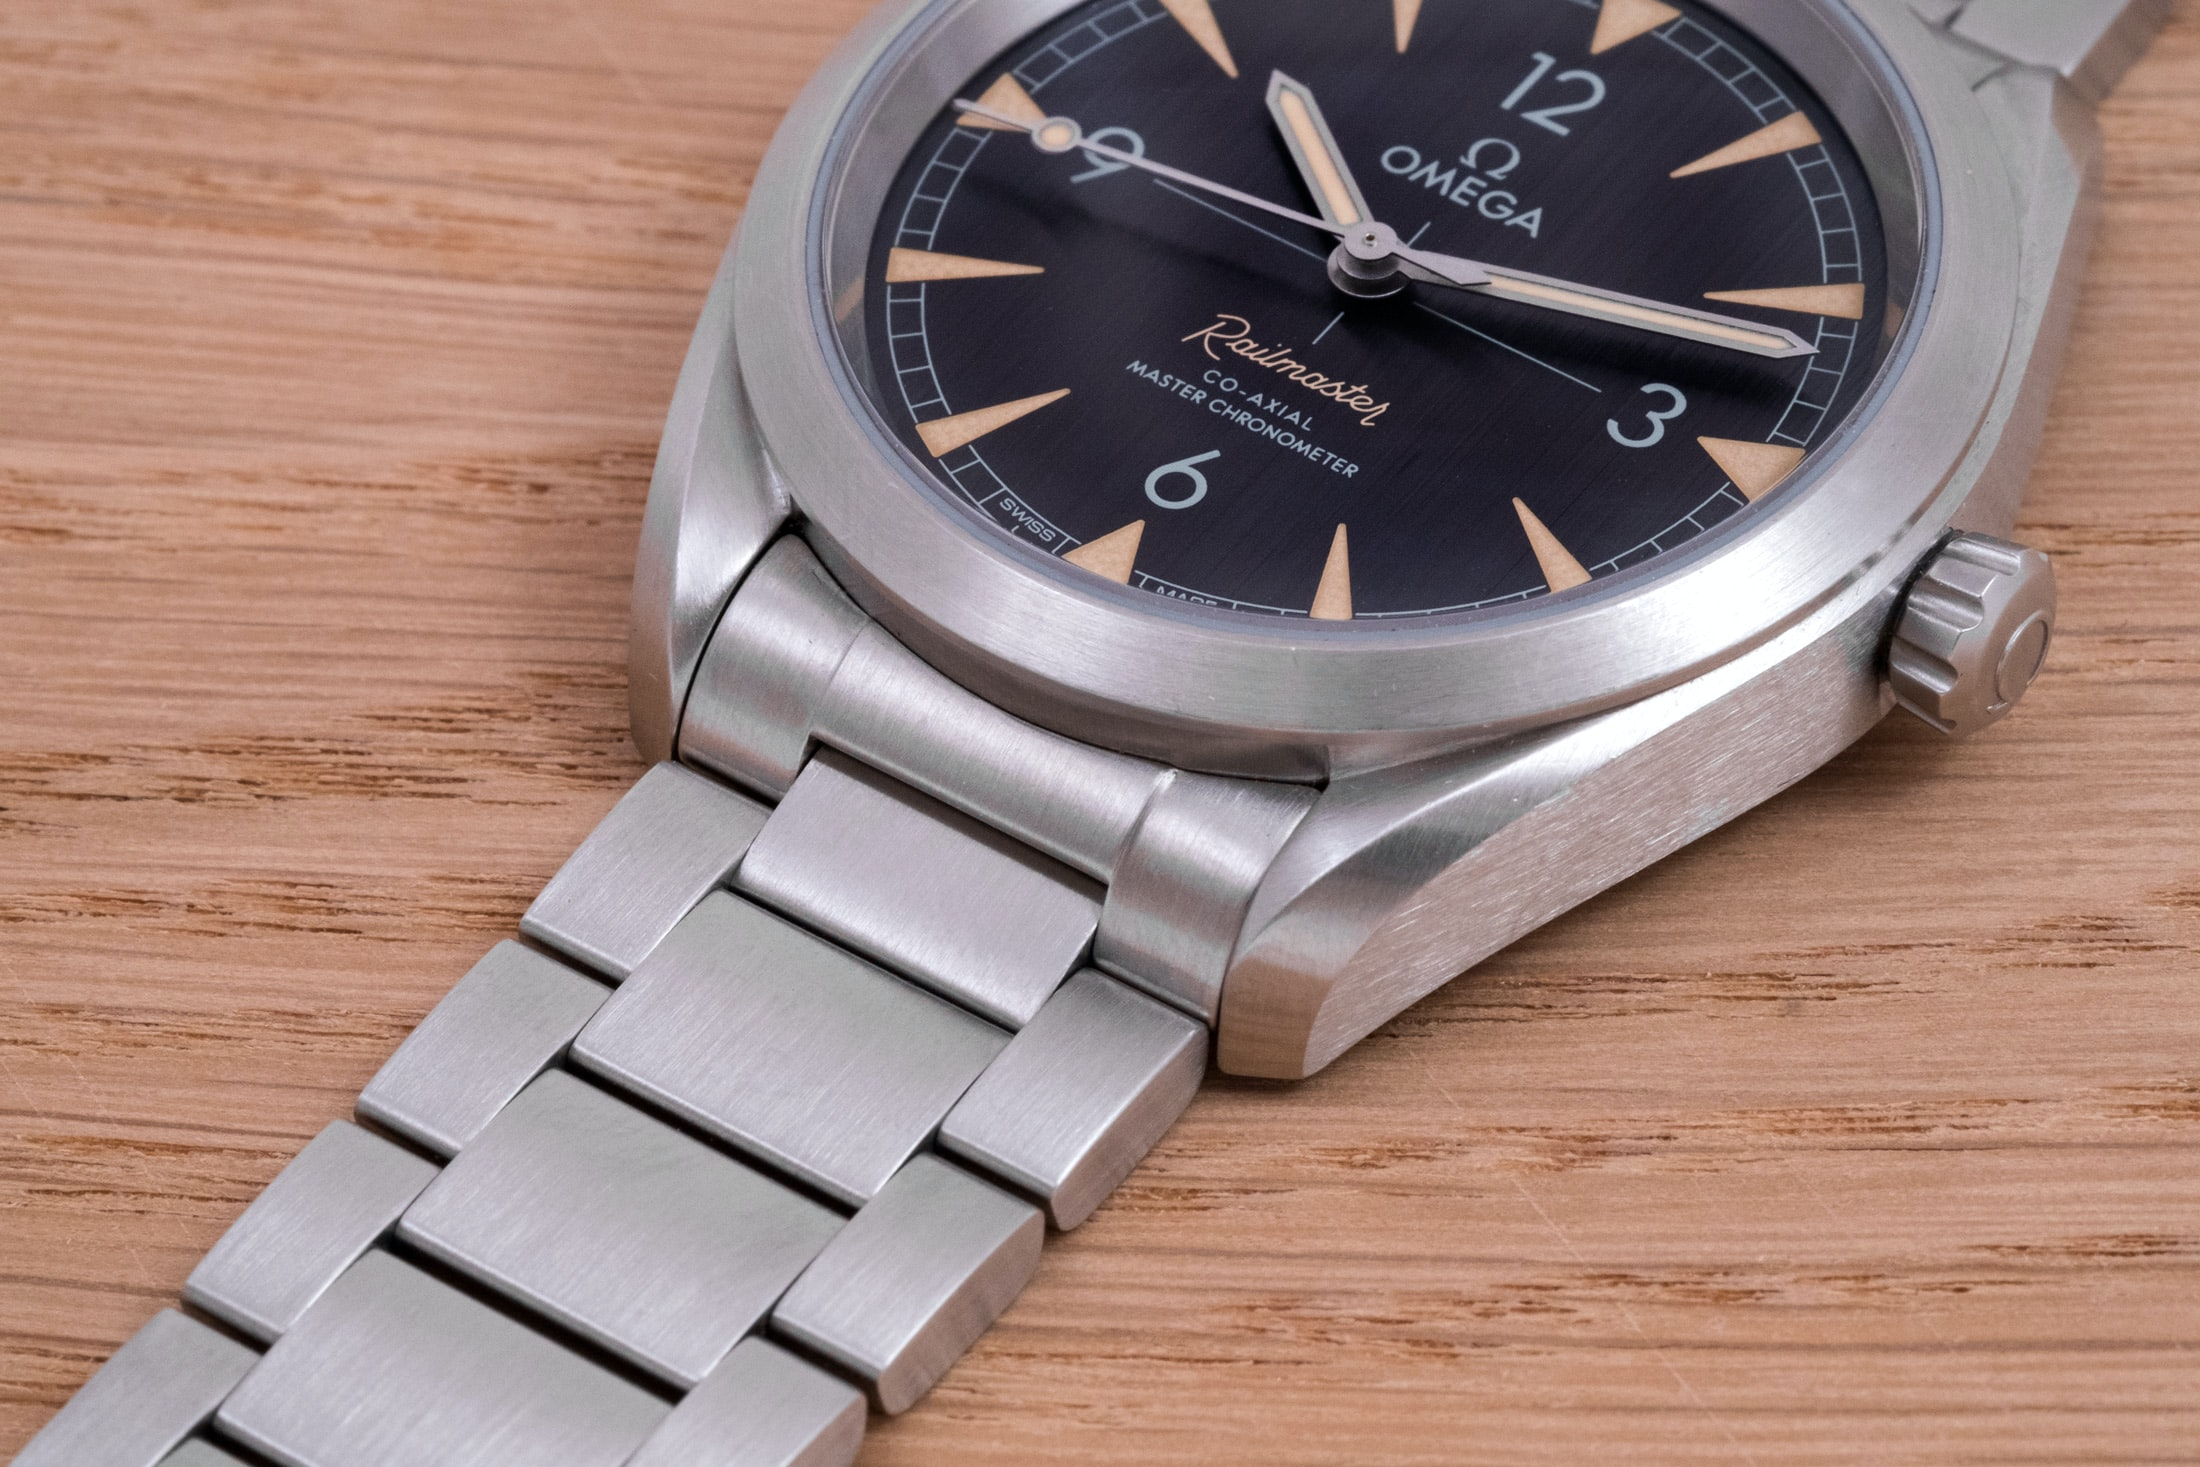 A Week On The Wrist: The Omega Seamaster Railmaster A Week On The Wrist: The Omega Seamaster Railmaster DSCF6143